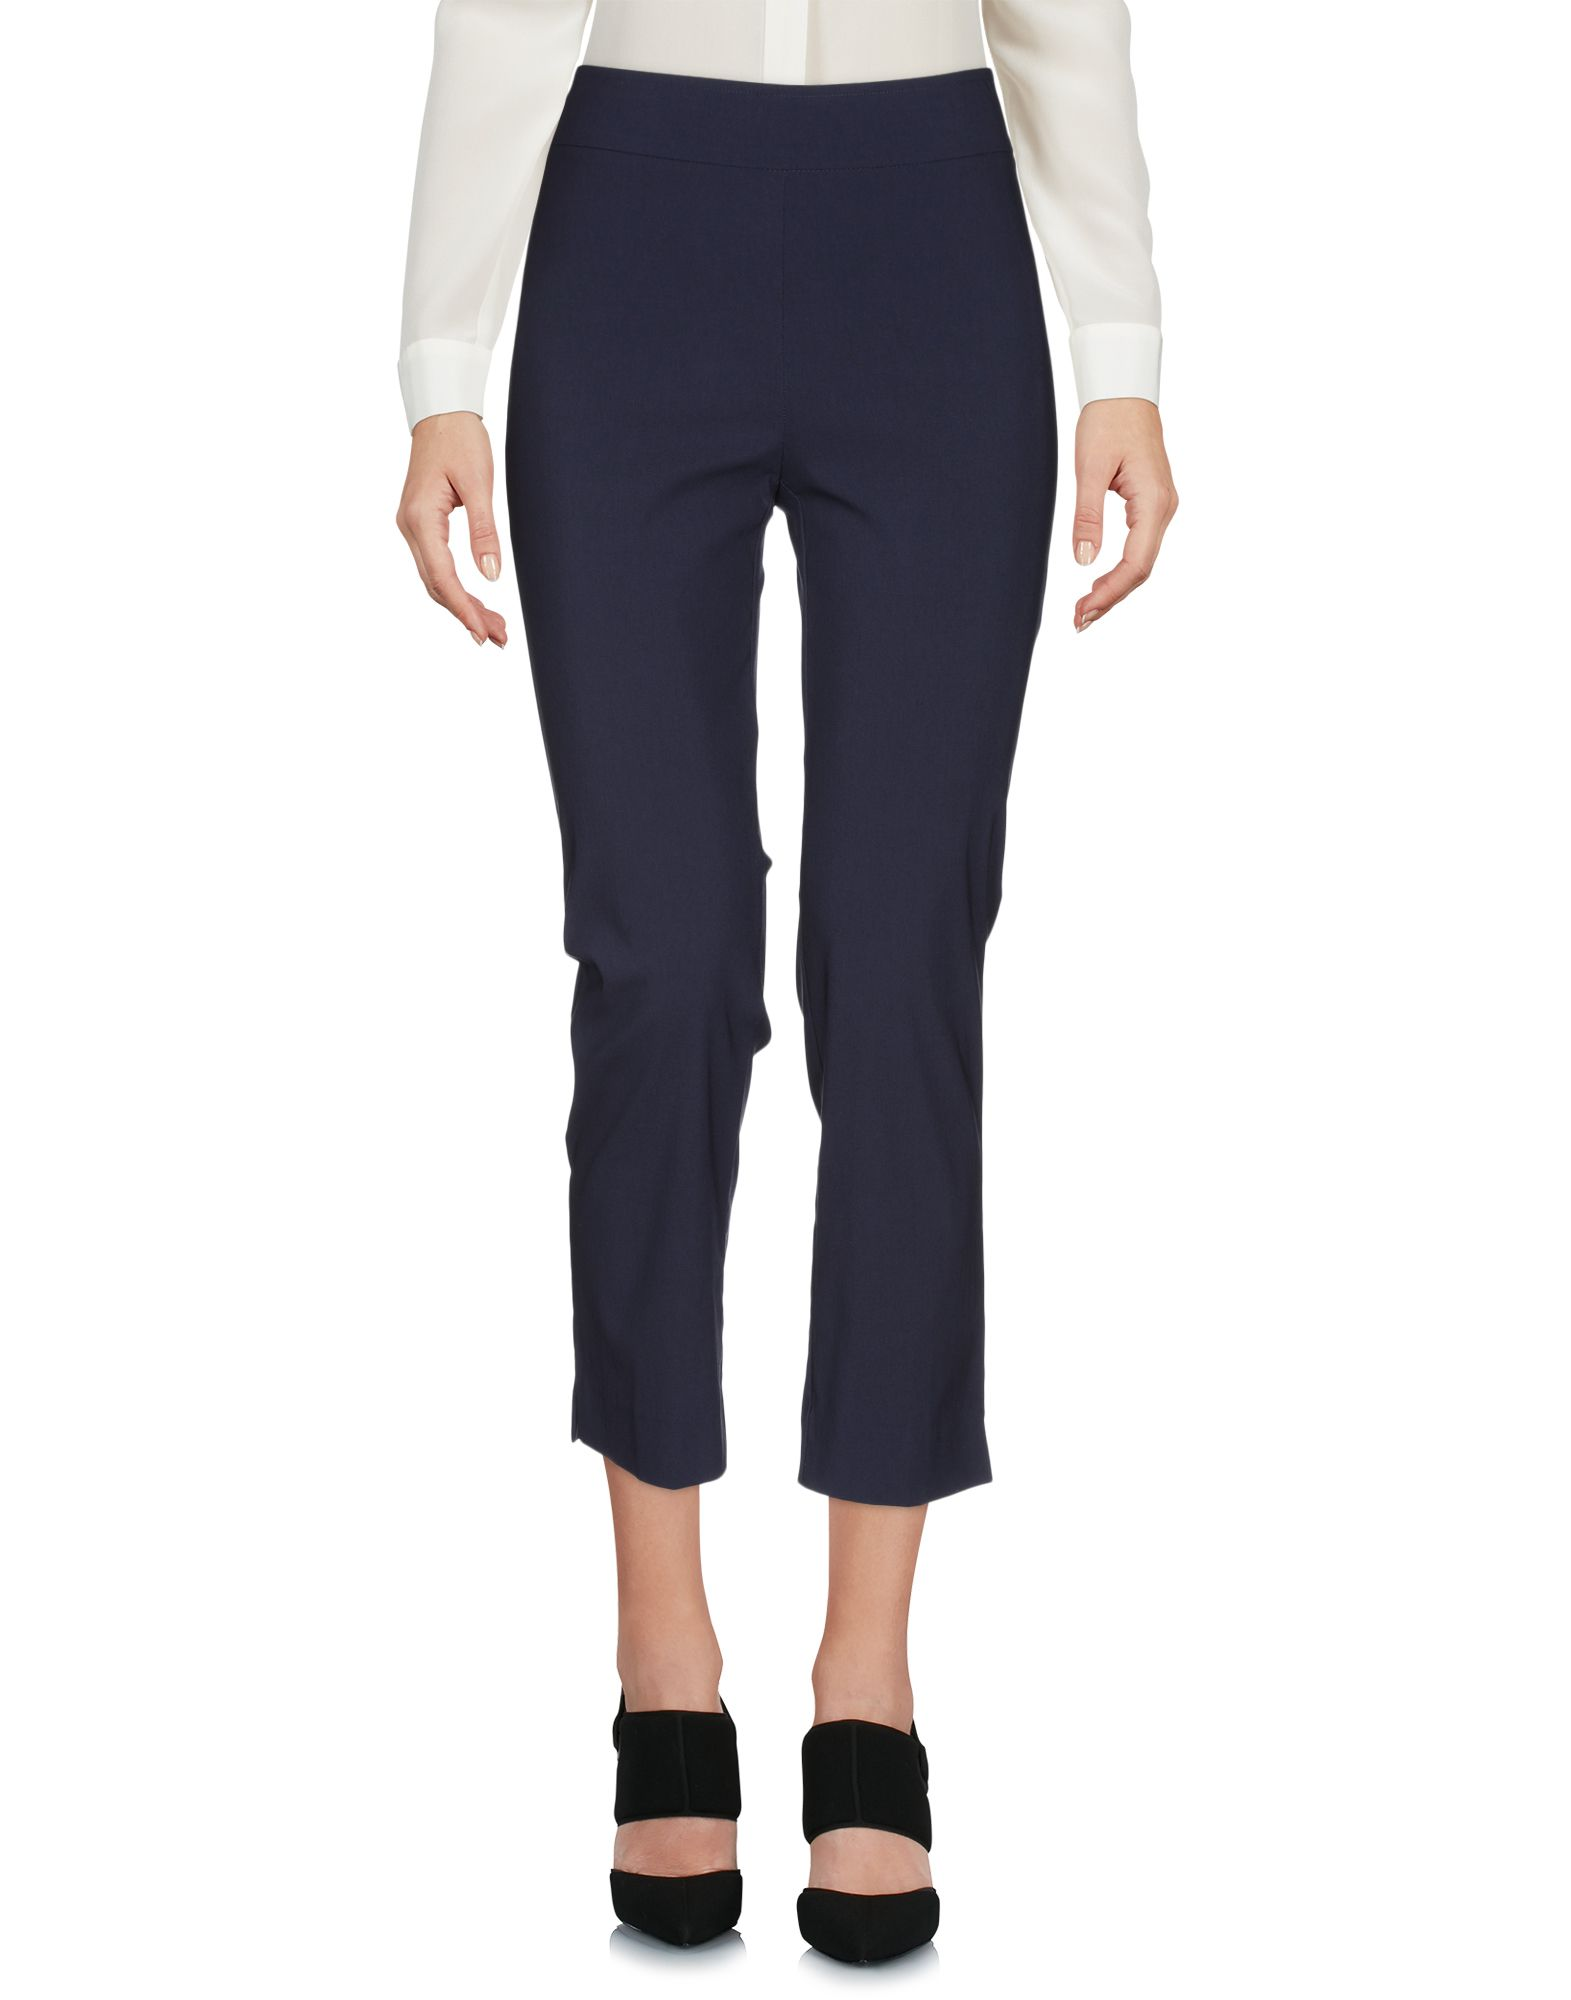 AVENUE MONTAIGNE Cropped Pants & Culottes in Dark Blue